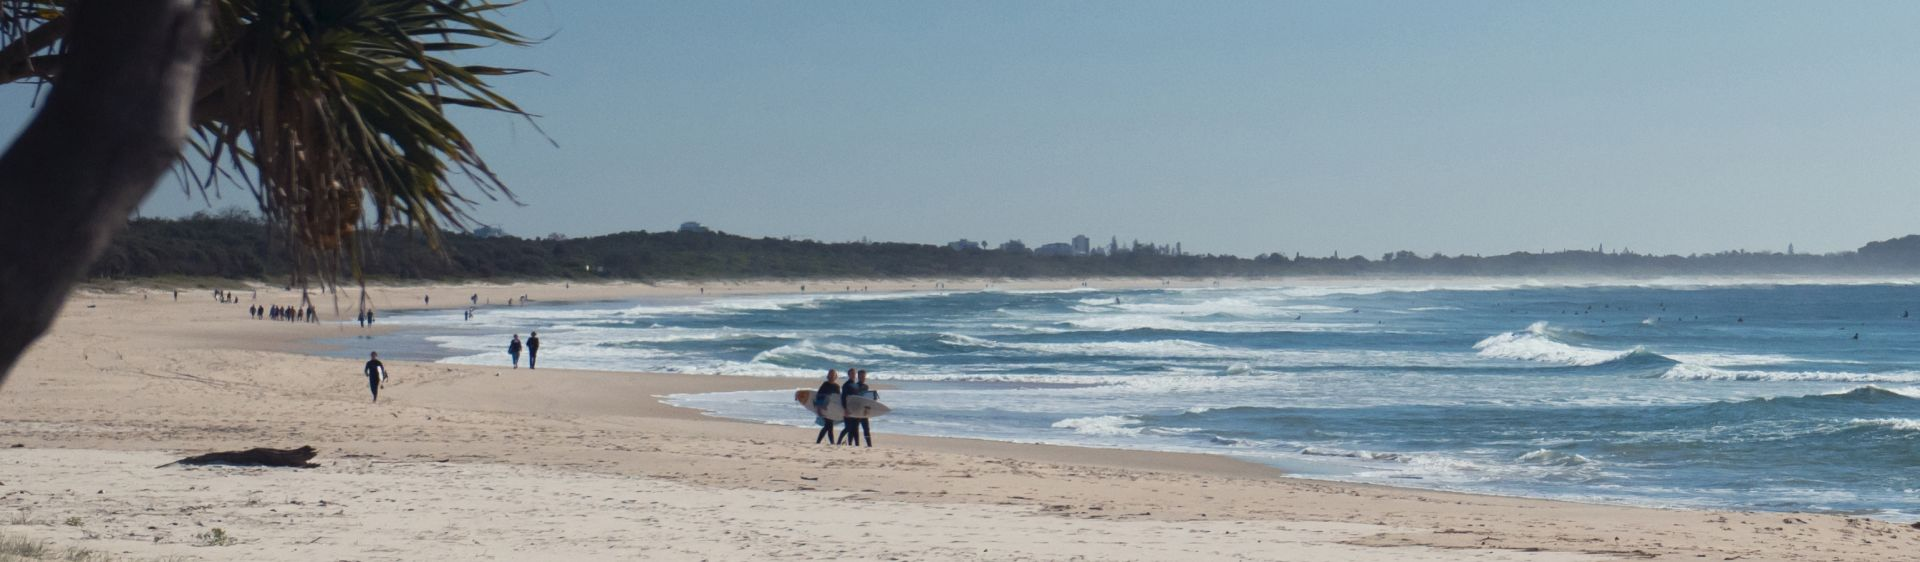 Surfers walking along Kingscliff Beach in The Tweed region.